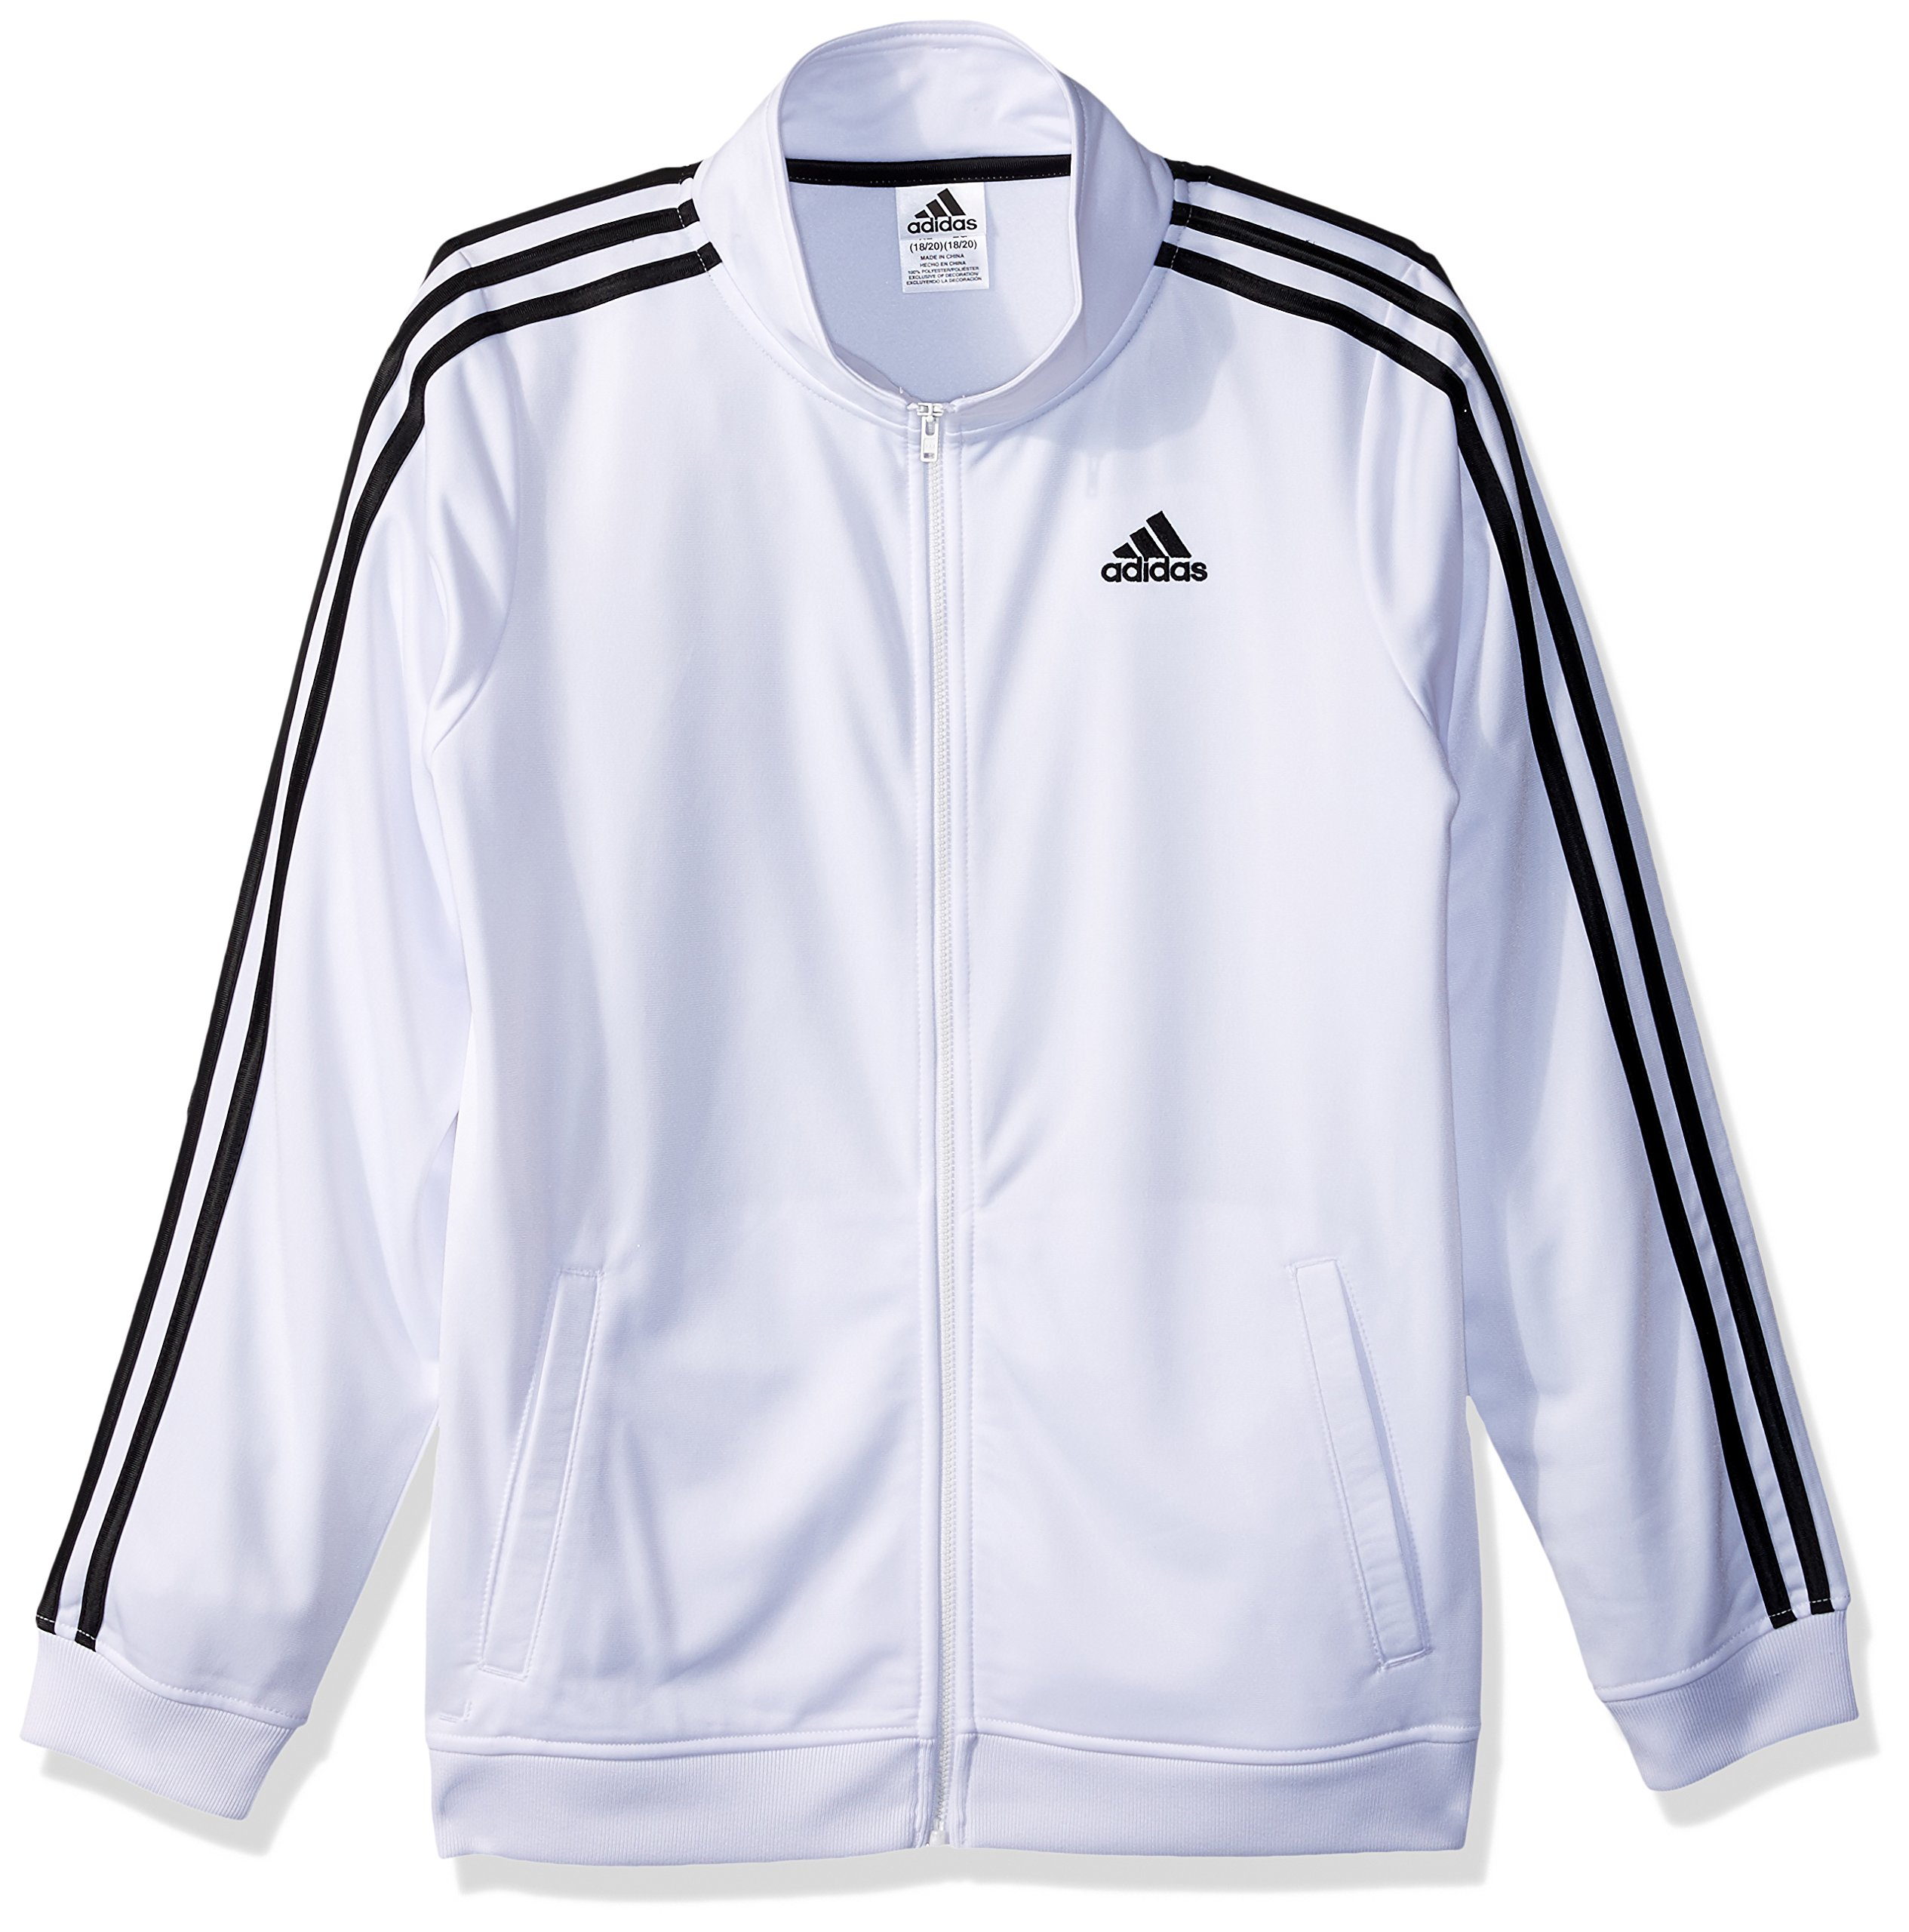 adidas Big Boys' Iconic Tricot Jacket, White, Medium by adidas